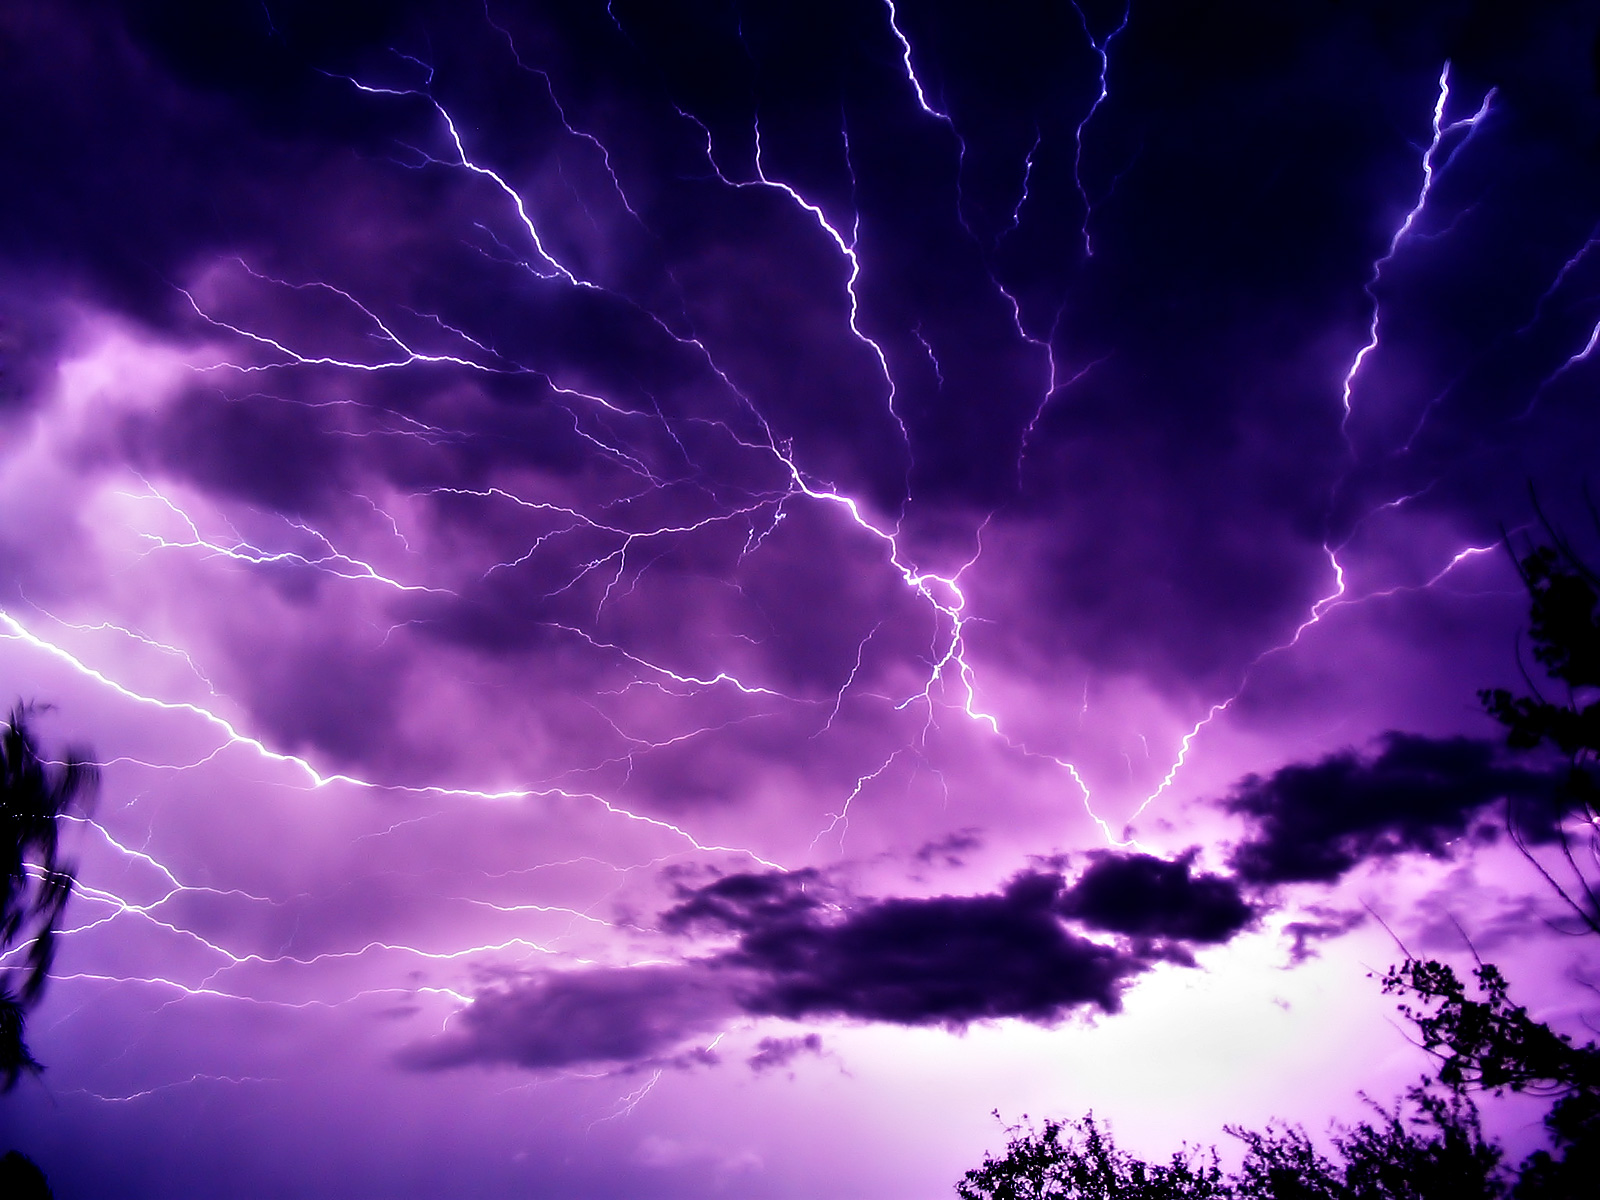 Wallpapers   HD Desktop Wallpapers Online Lightning Strikes 1600x1200